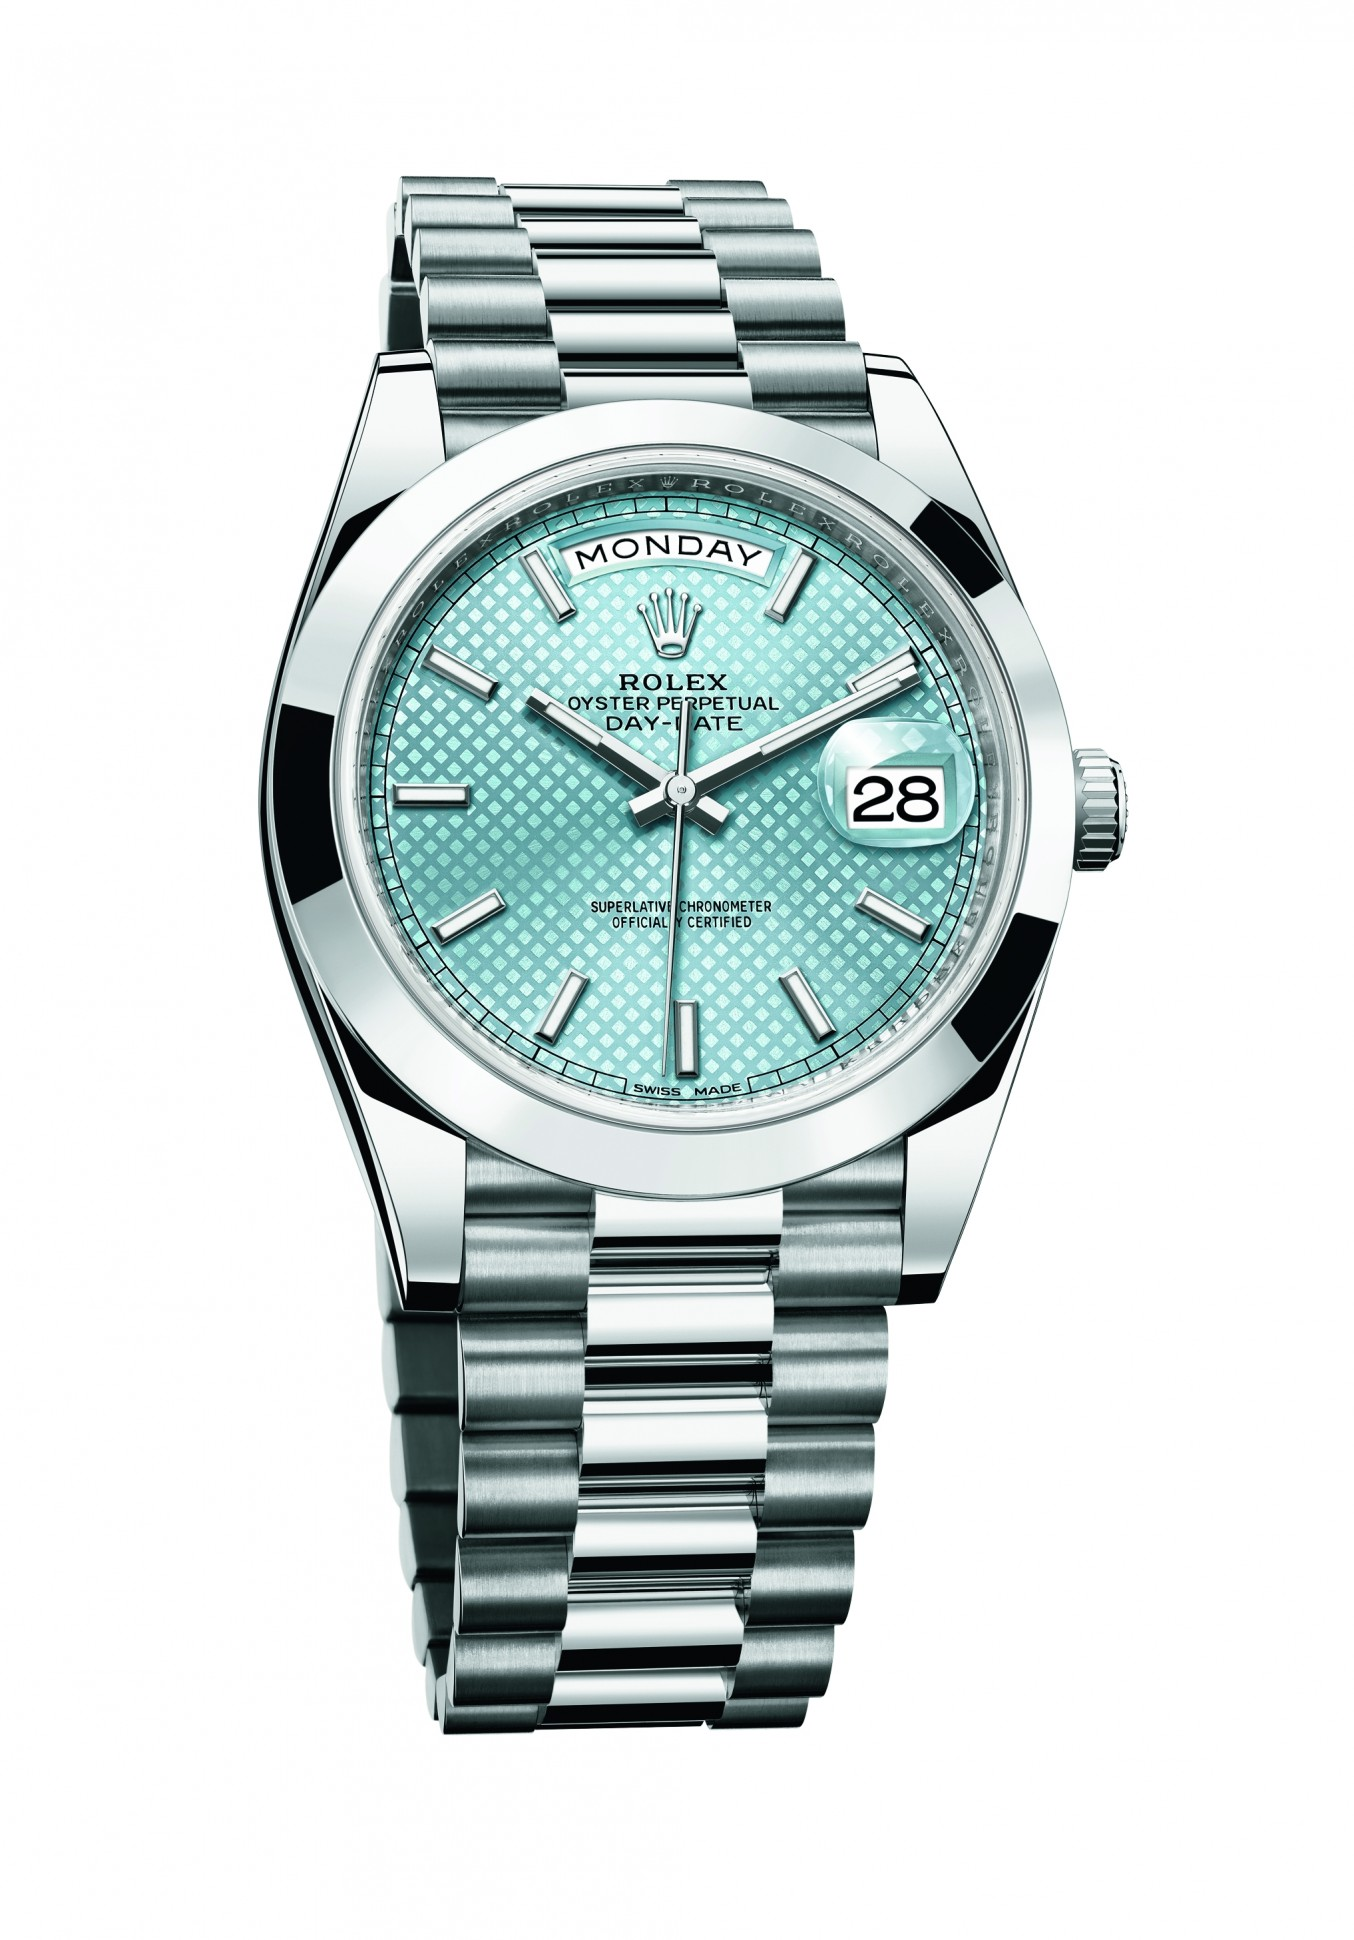 Rolex Oyster Perpetual Day-Date 40-1